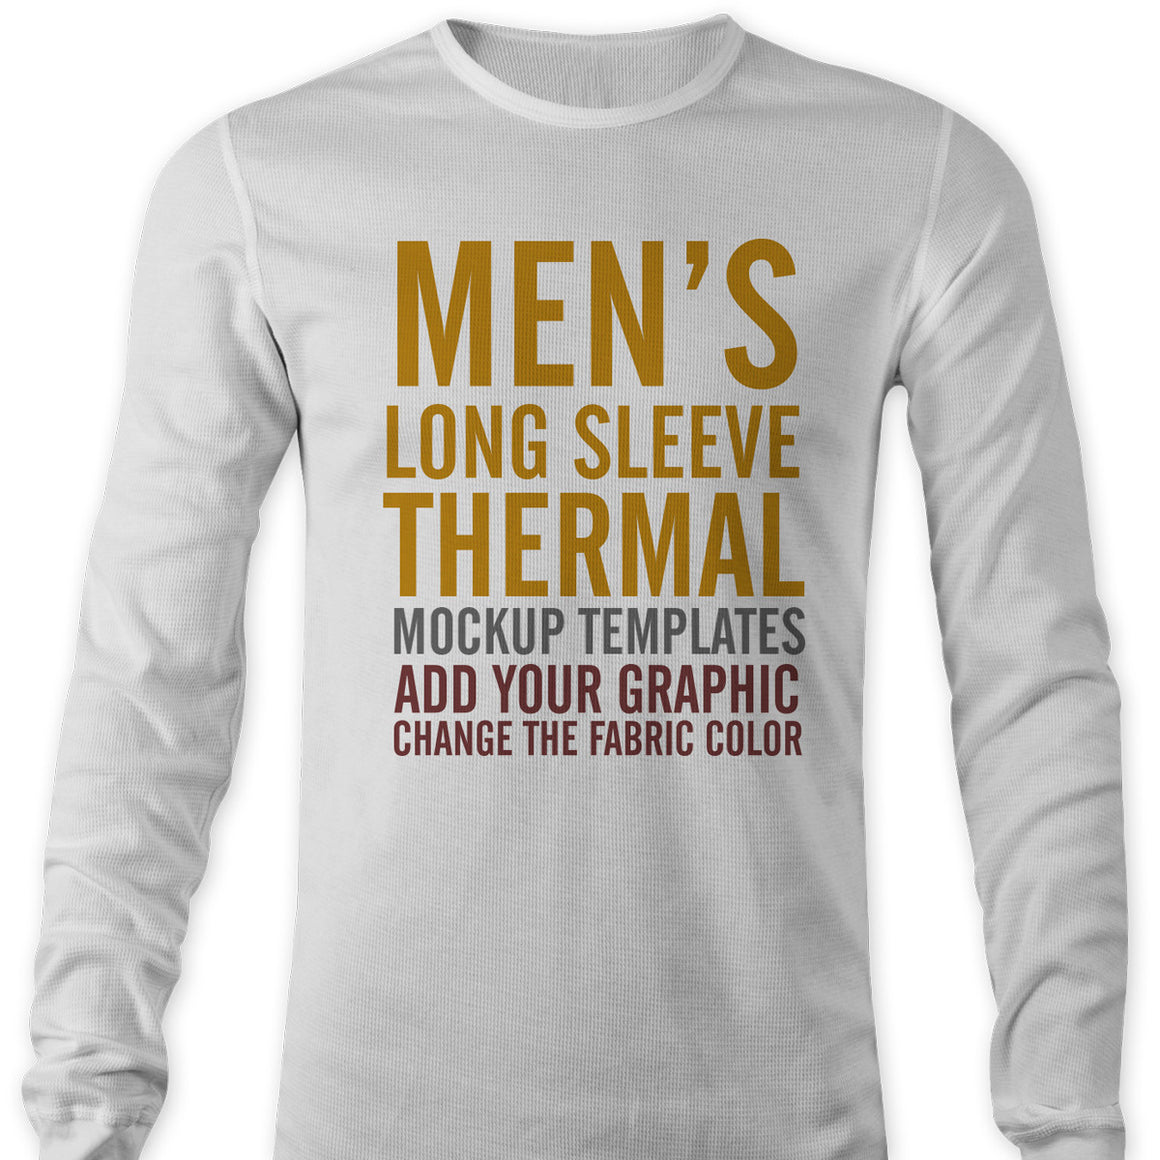 Men's Thermal Long Sleeve Shirt Mockup Templates for Photoshop